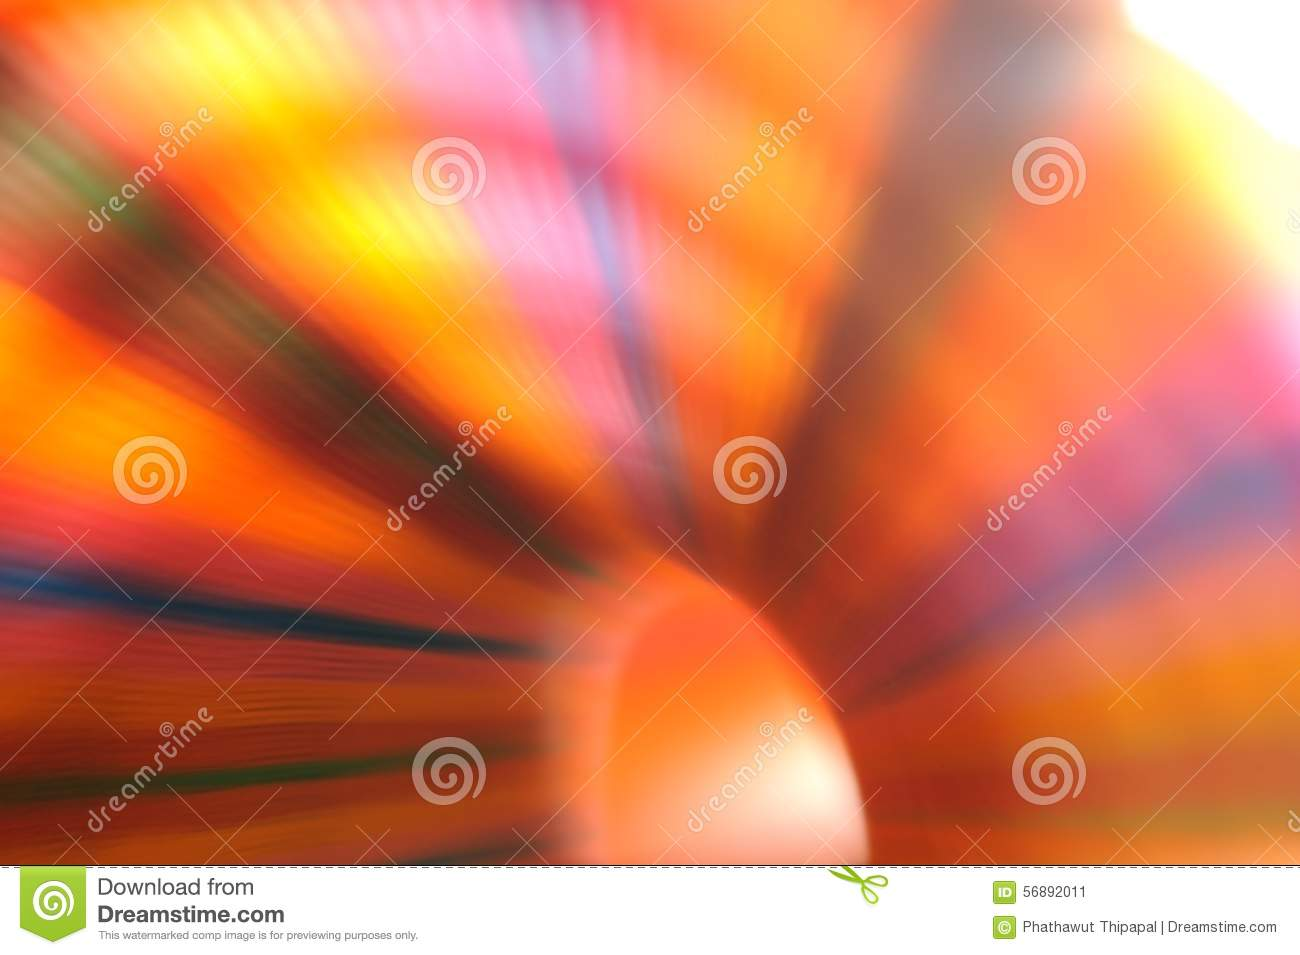 Blurred colourful Paper on background